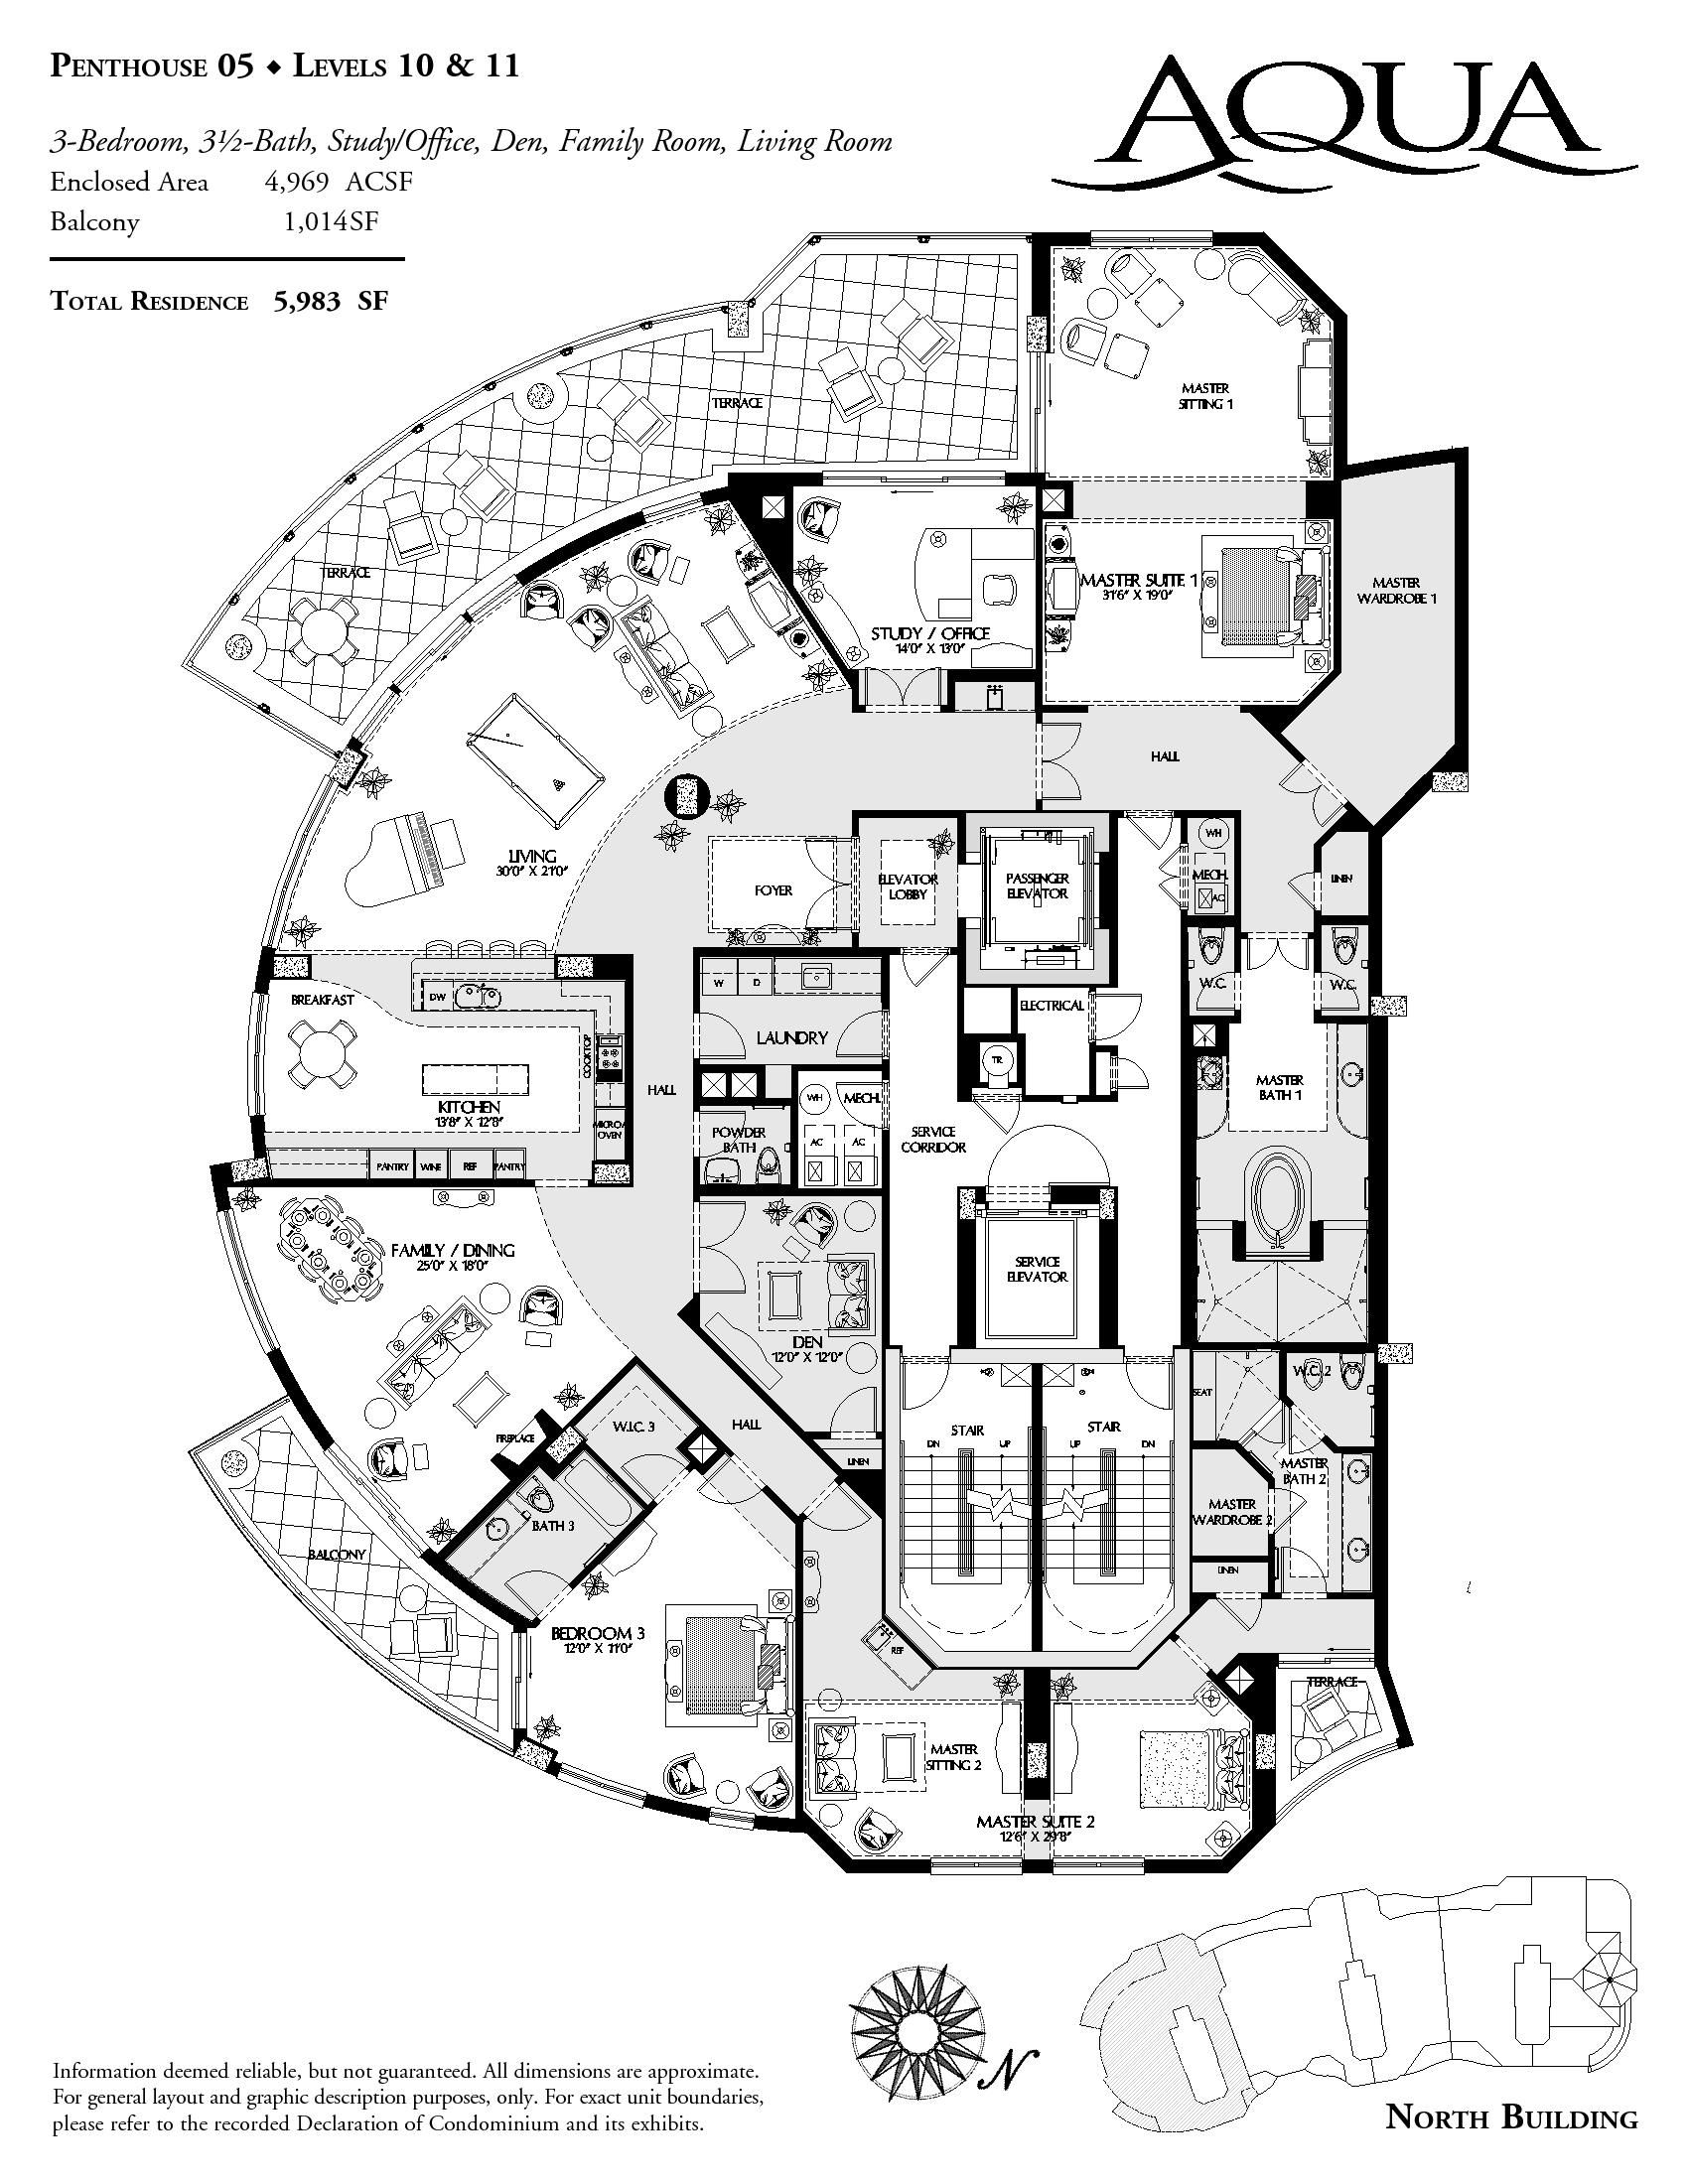 Incredible Floorplans Penthouse05 1 7002 200 Pixels House Hotel Inspirational Interior Design Netriciaus